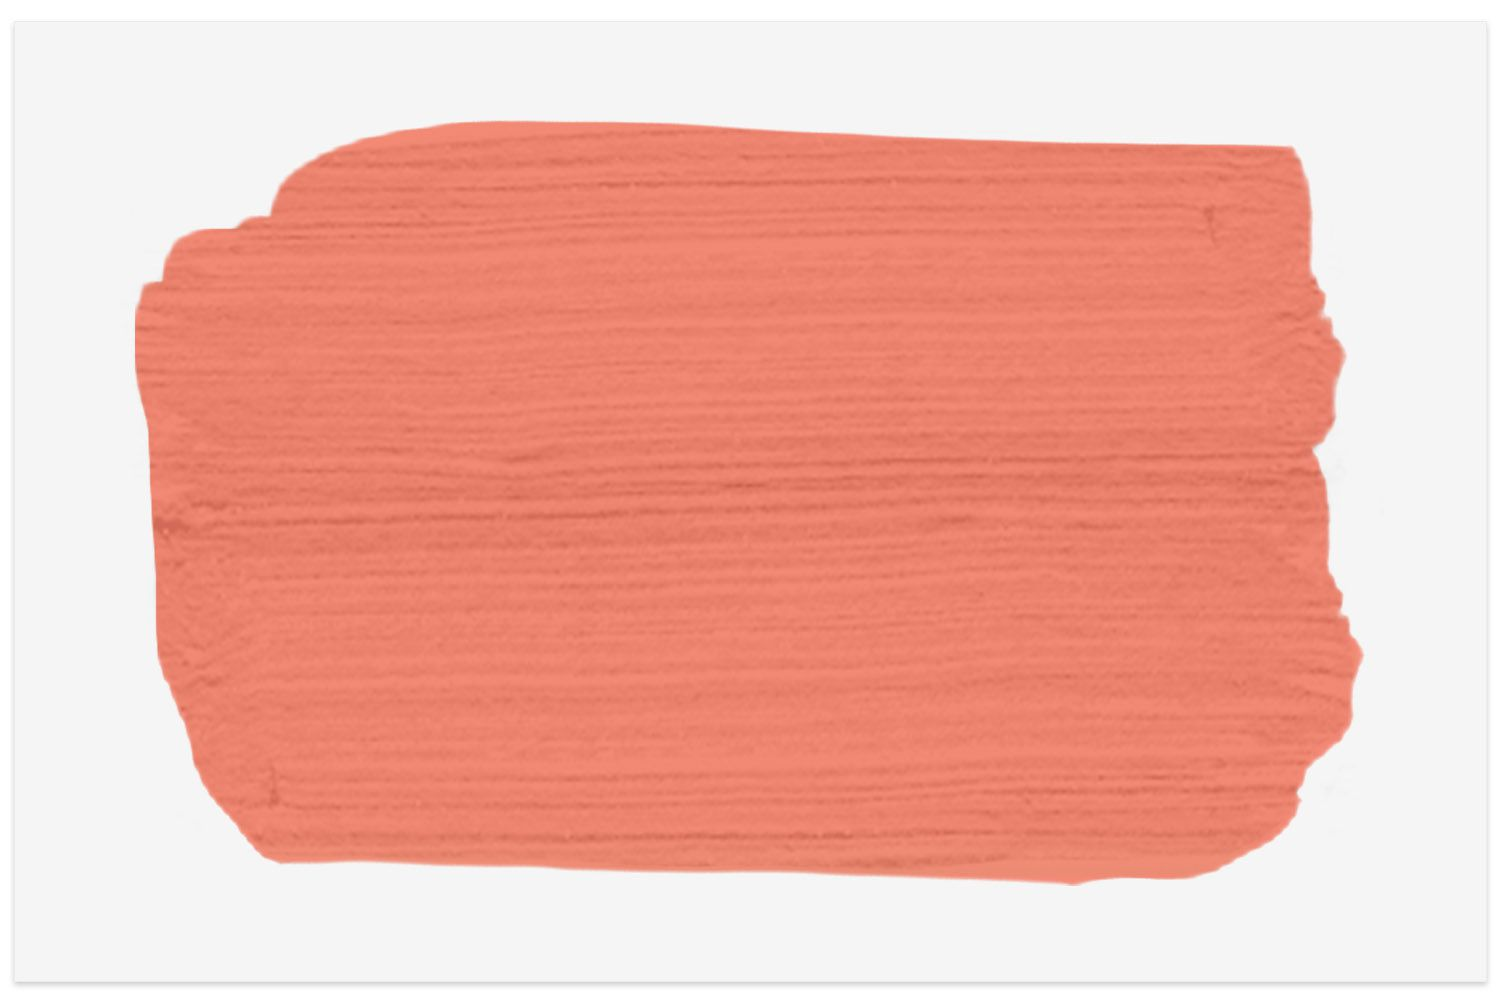 Coral Passion paint swatch from Valspar